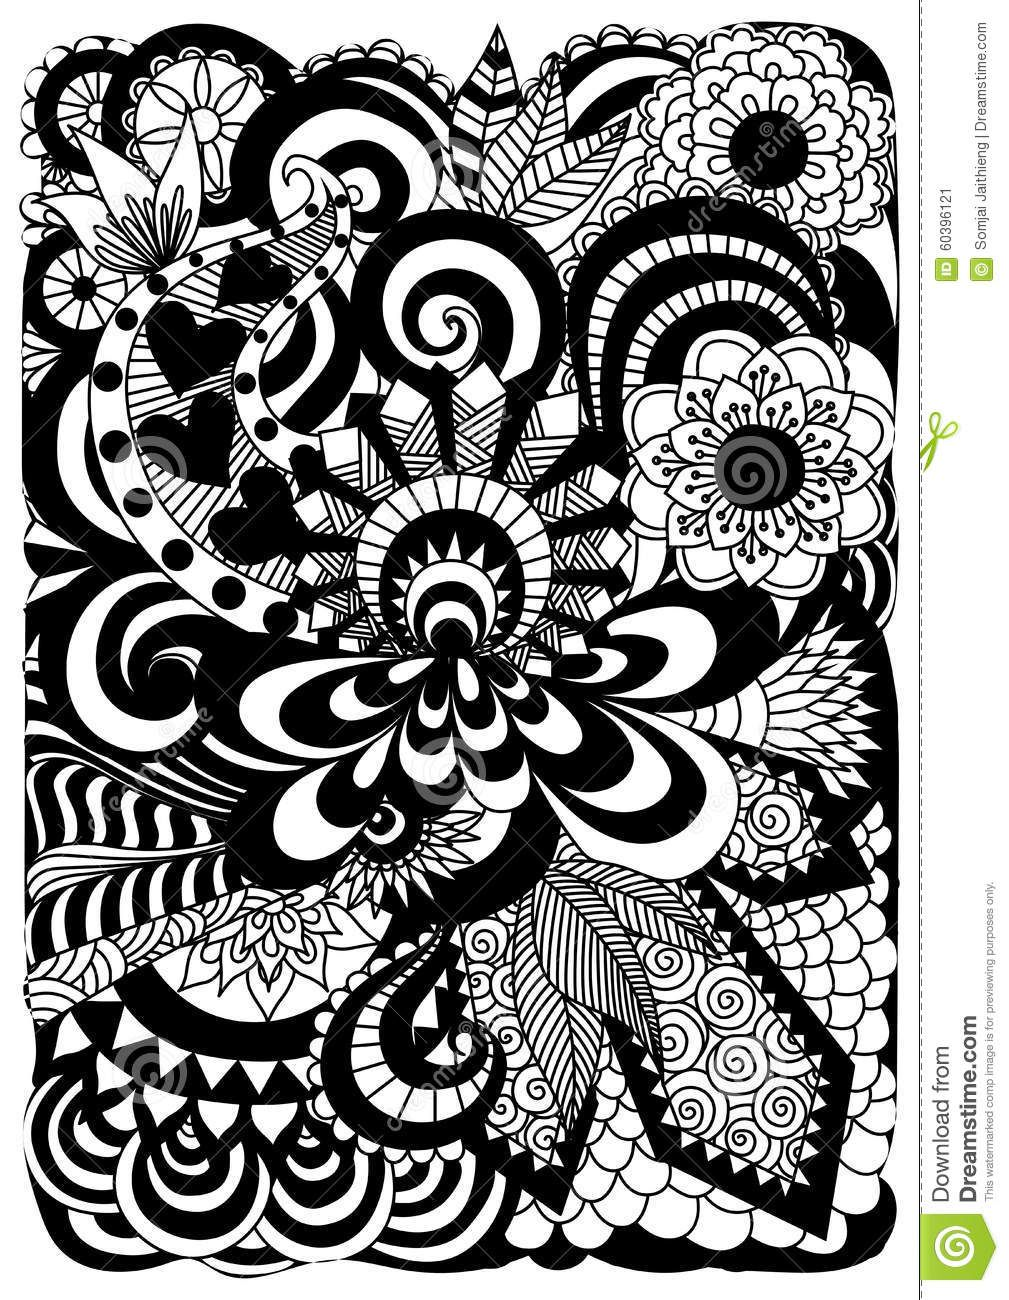 detailed abstract zentangle flowers background download from over 43 million high quality stock photos